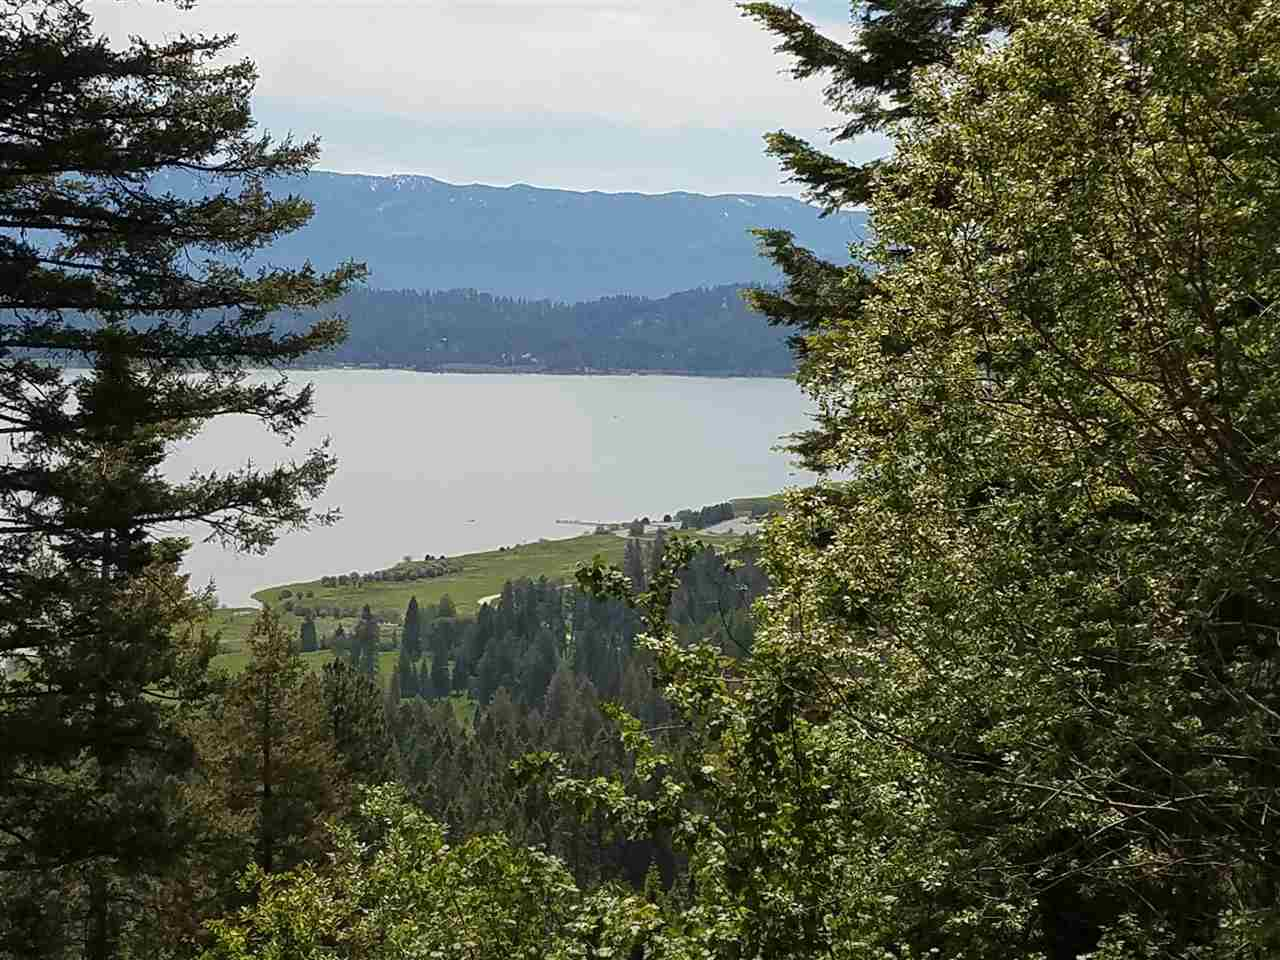 Recreational Property for Sale at TBD - O Anderson Creek TBD - O Anderson Creek Cascade, Idaho 83611